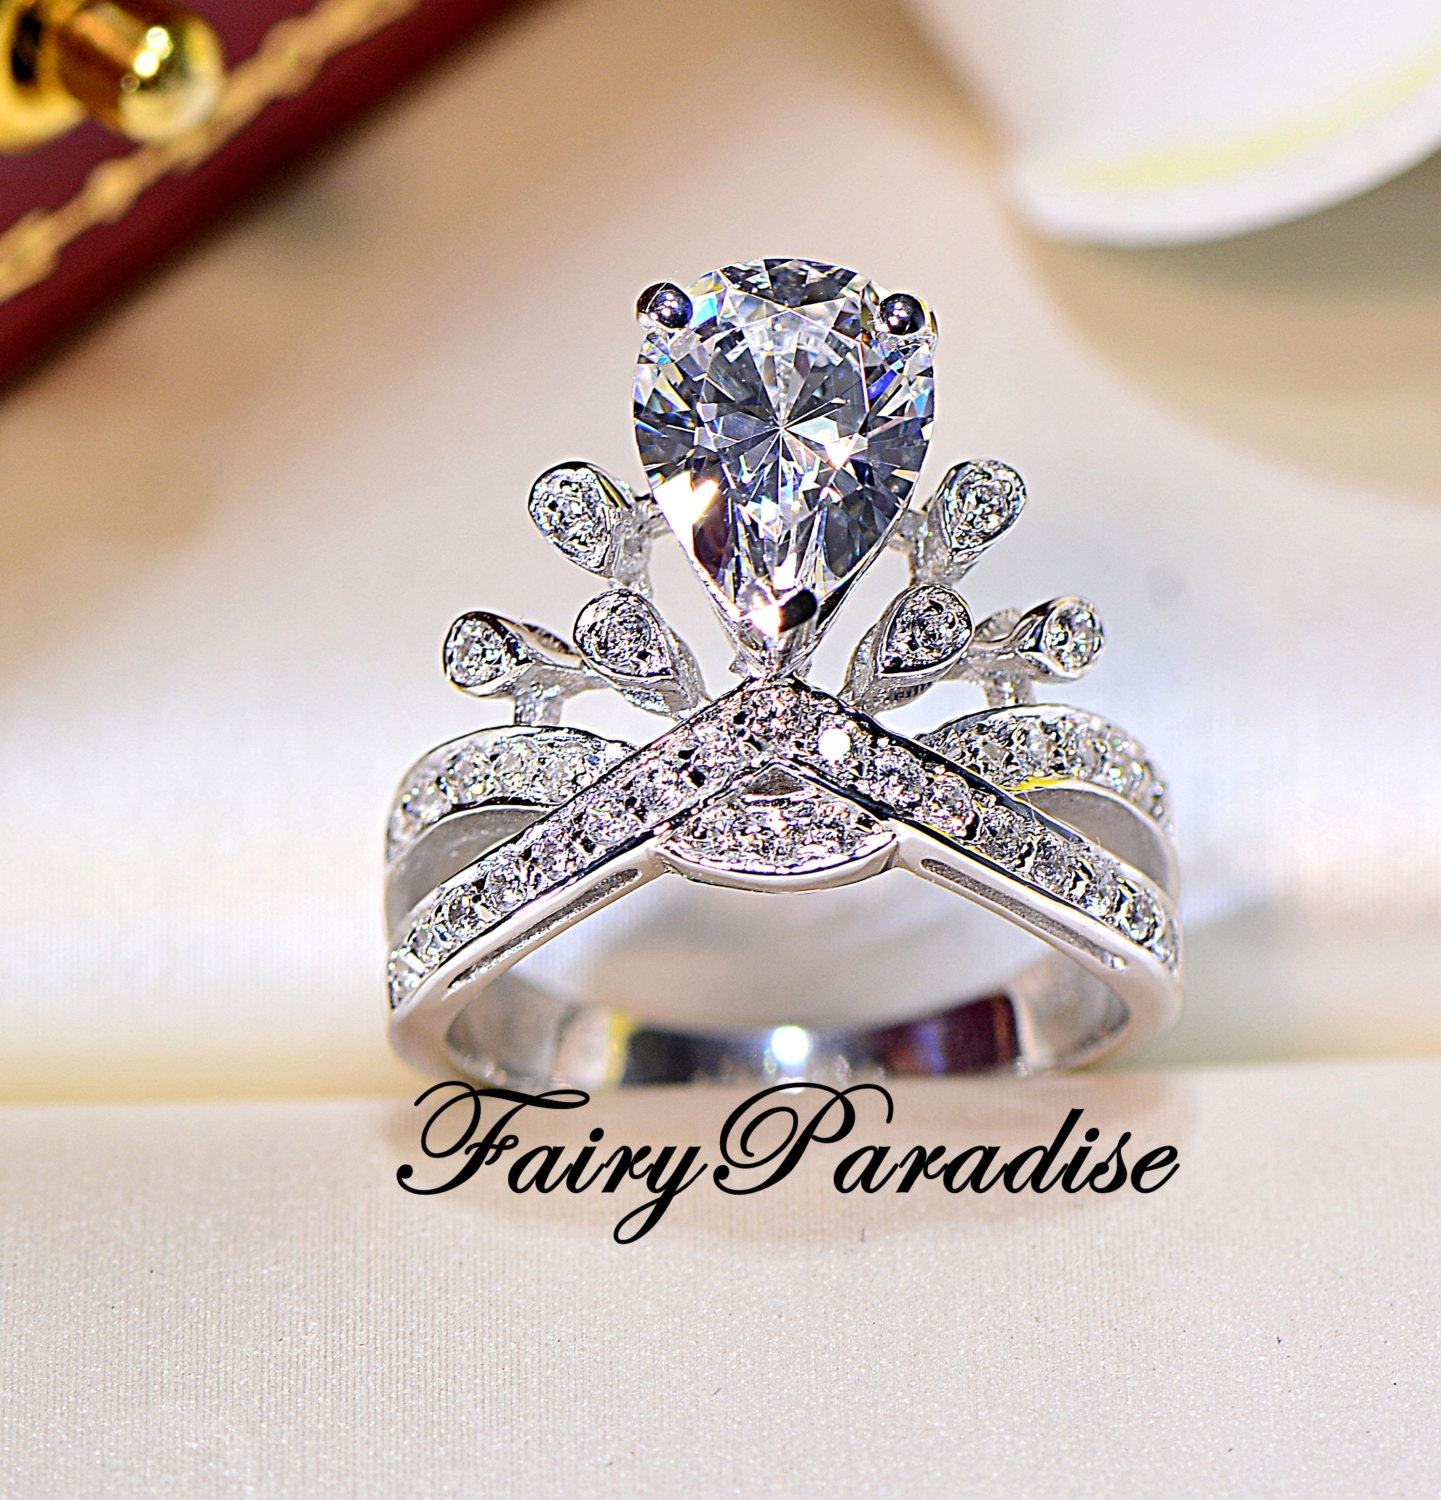 frog jewelry media statement proposal fairy animal engagement prince fairytale alternative ring rings